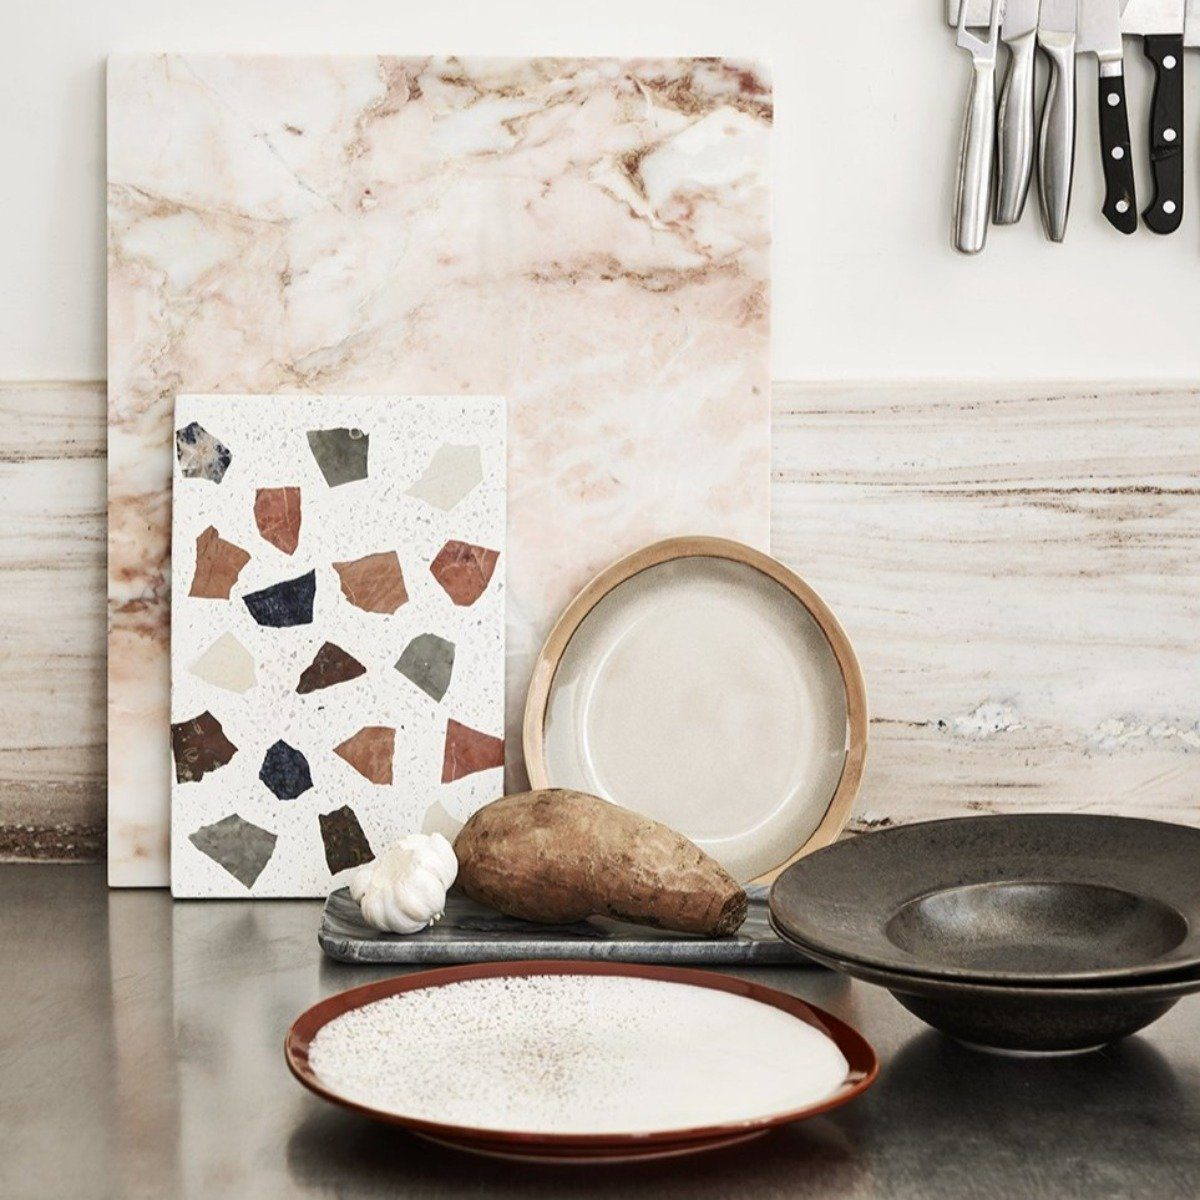 """BLACKISH"" RUSTIC PASTA PLATE - BY HK LIVING plate HK LIVING"